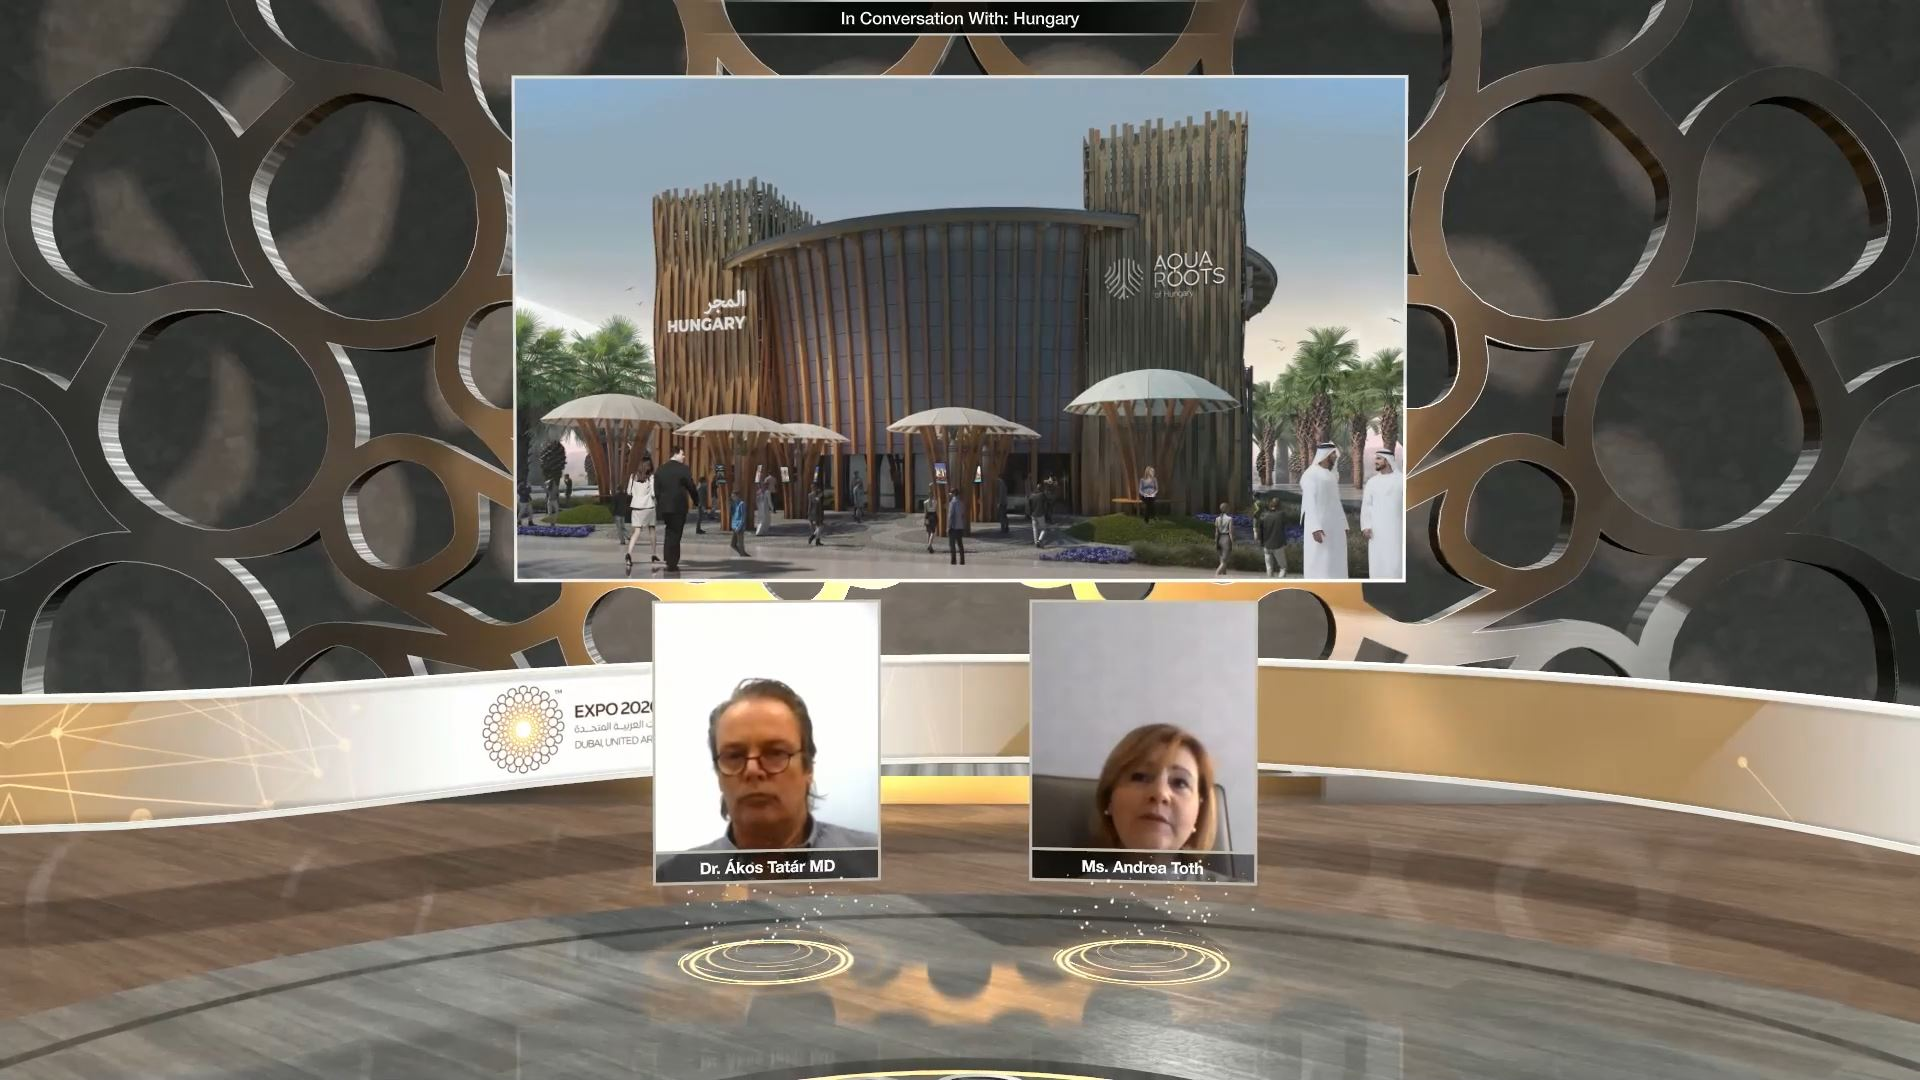 expo 2020 health and wellness week virtual event speakers with a screen